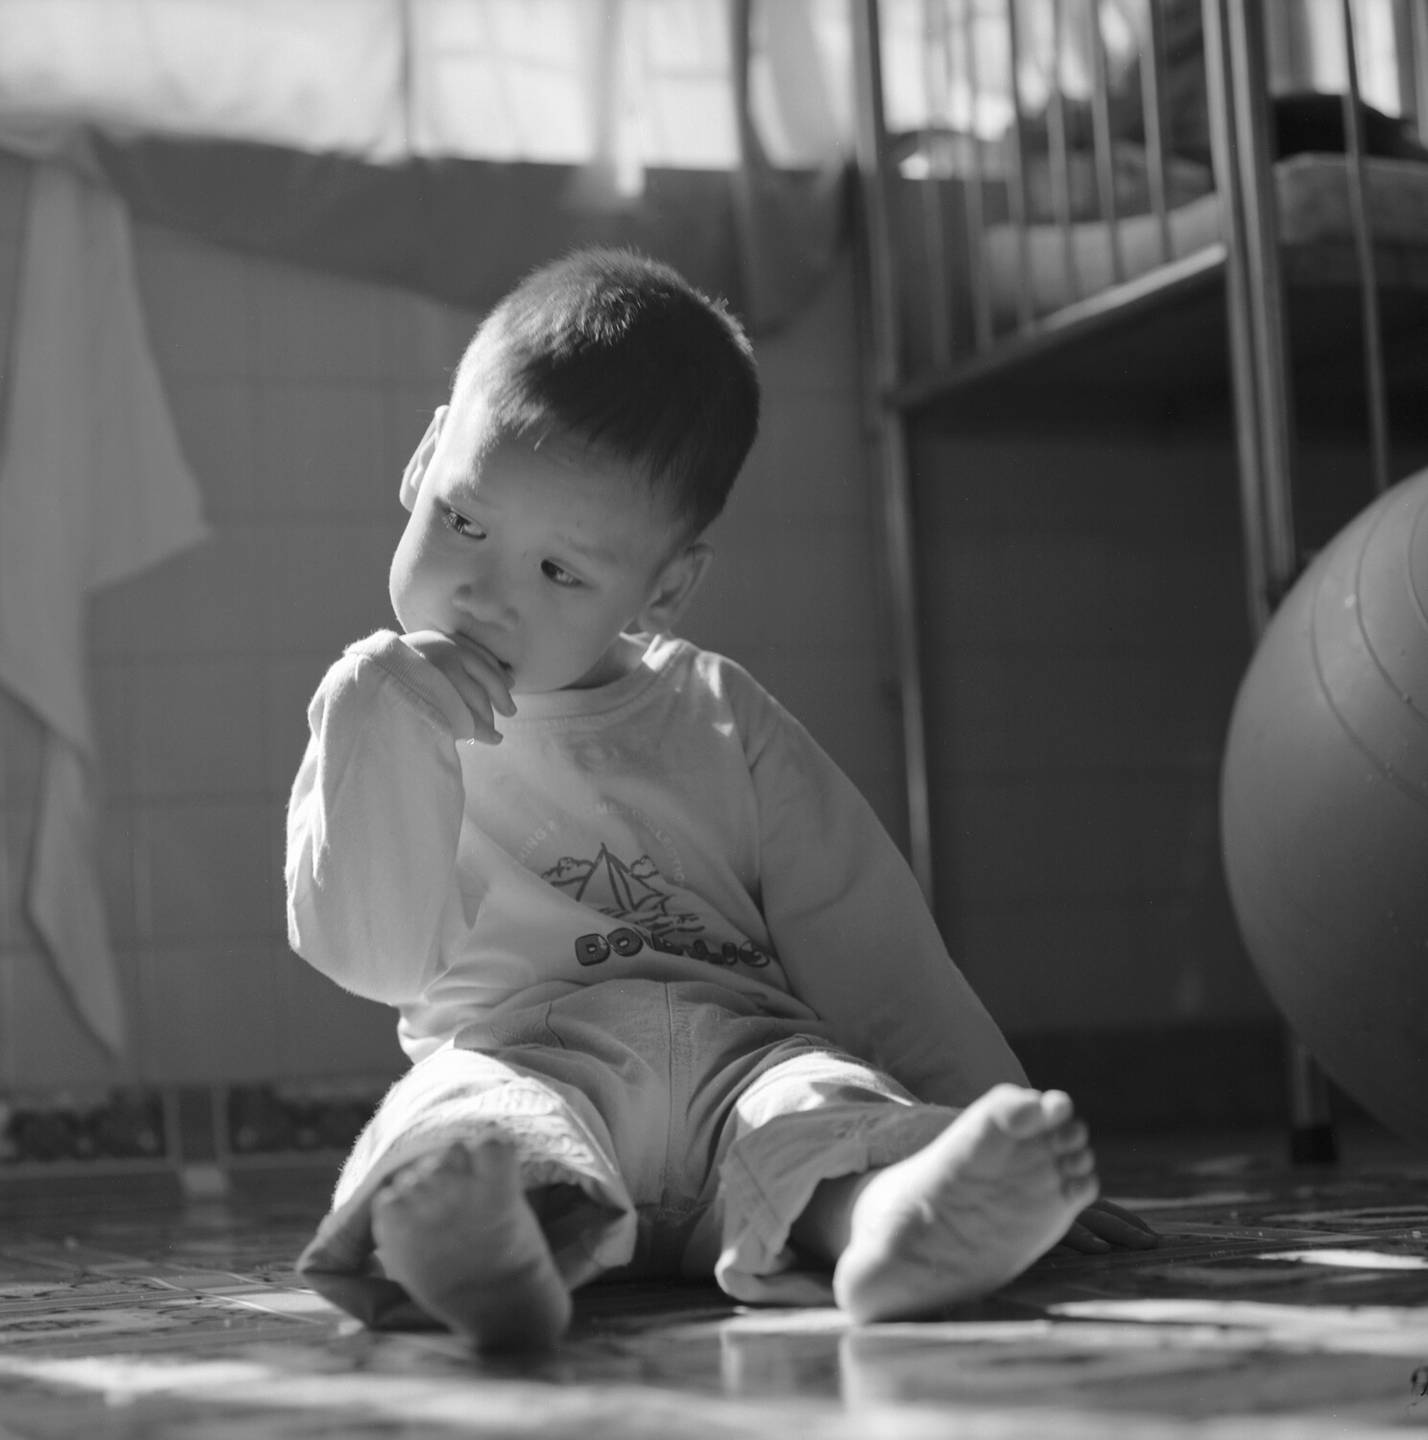 A deformed Asian child seated on the floor.